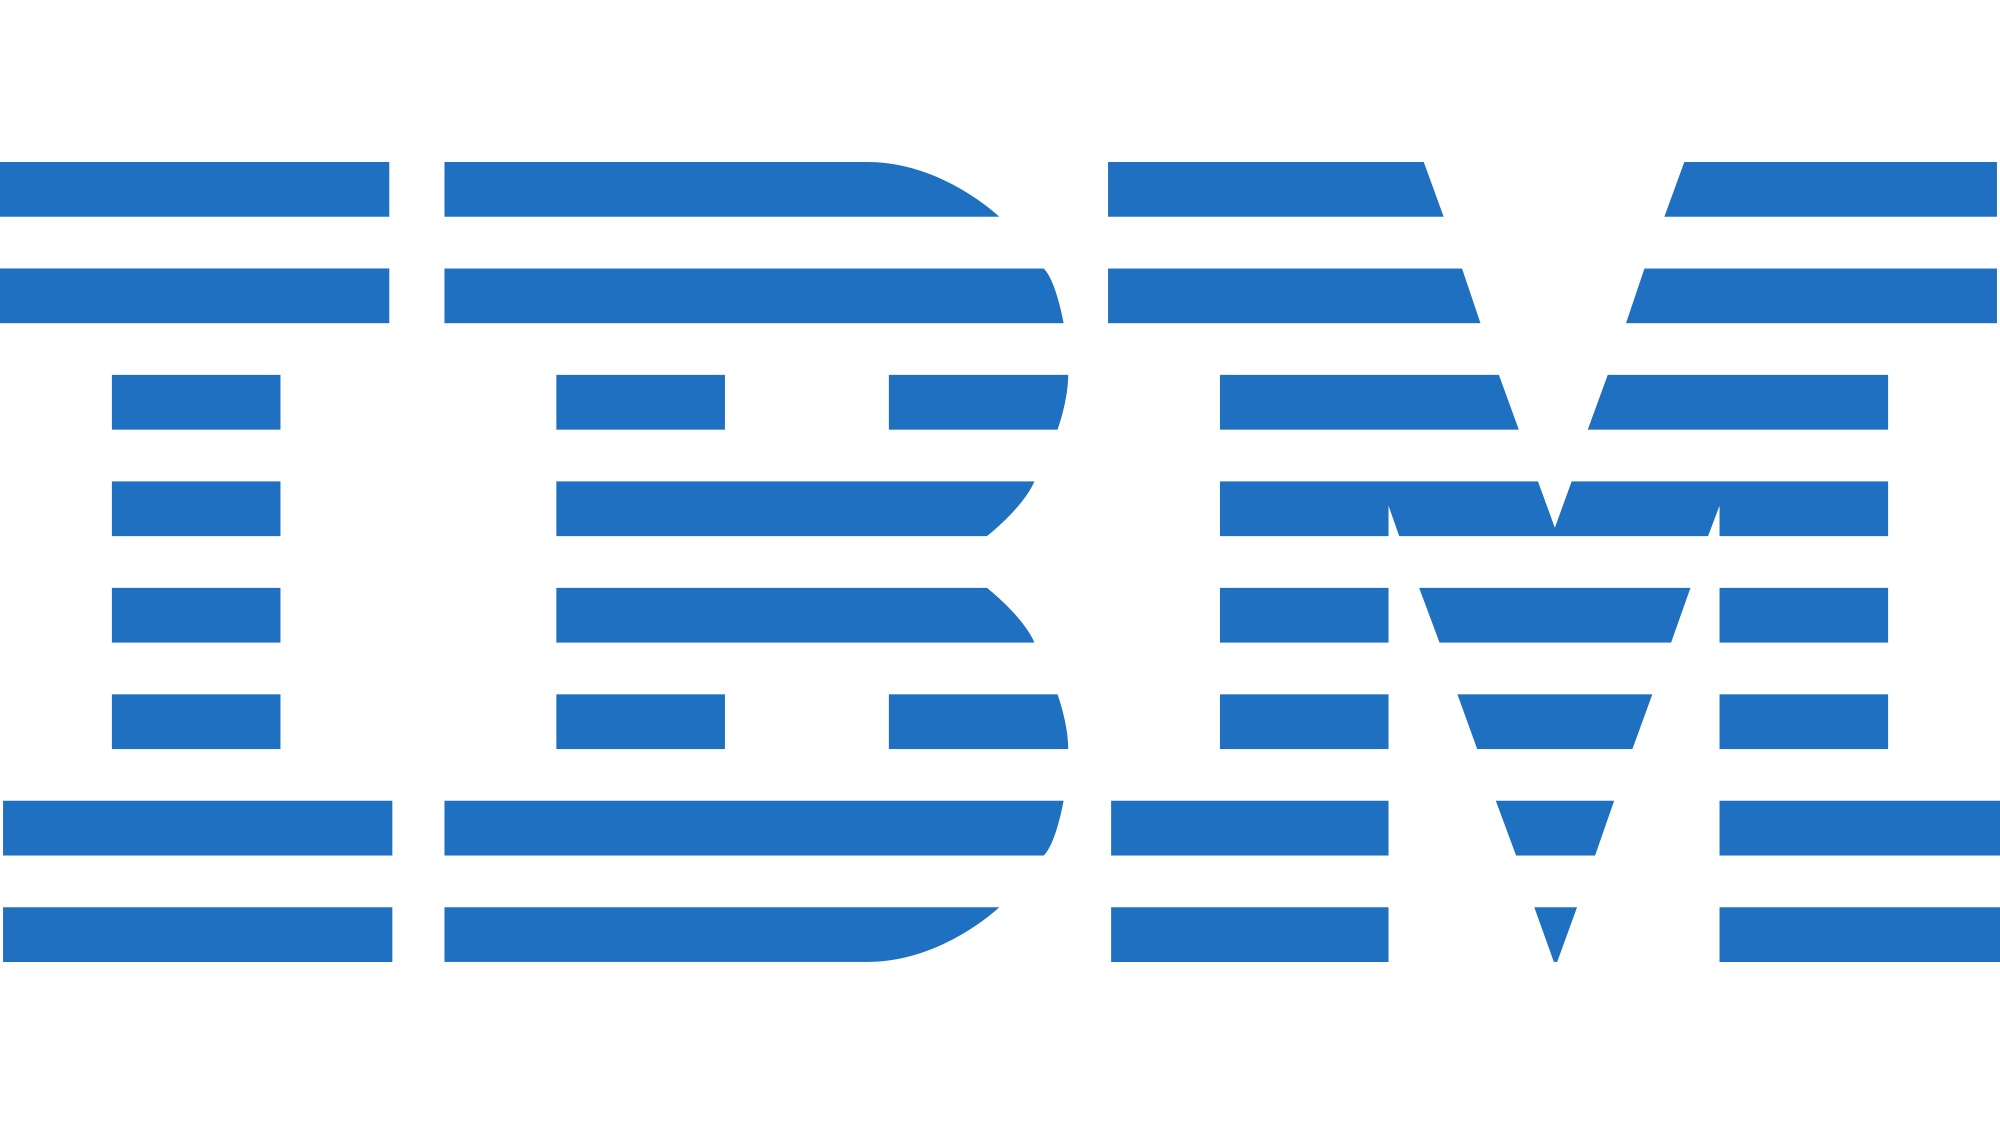 IBM to Invest in IoT – MIS4596 – Section 3 Spring 2015